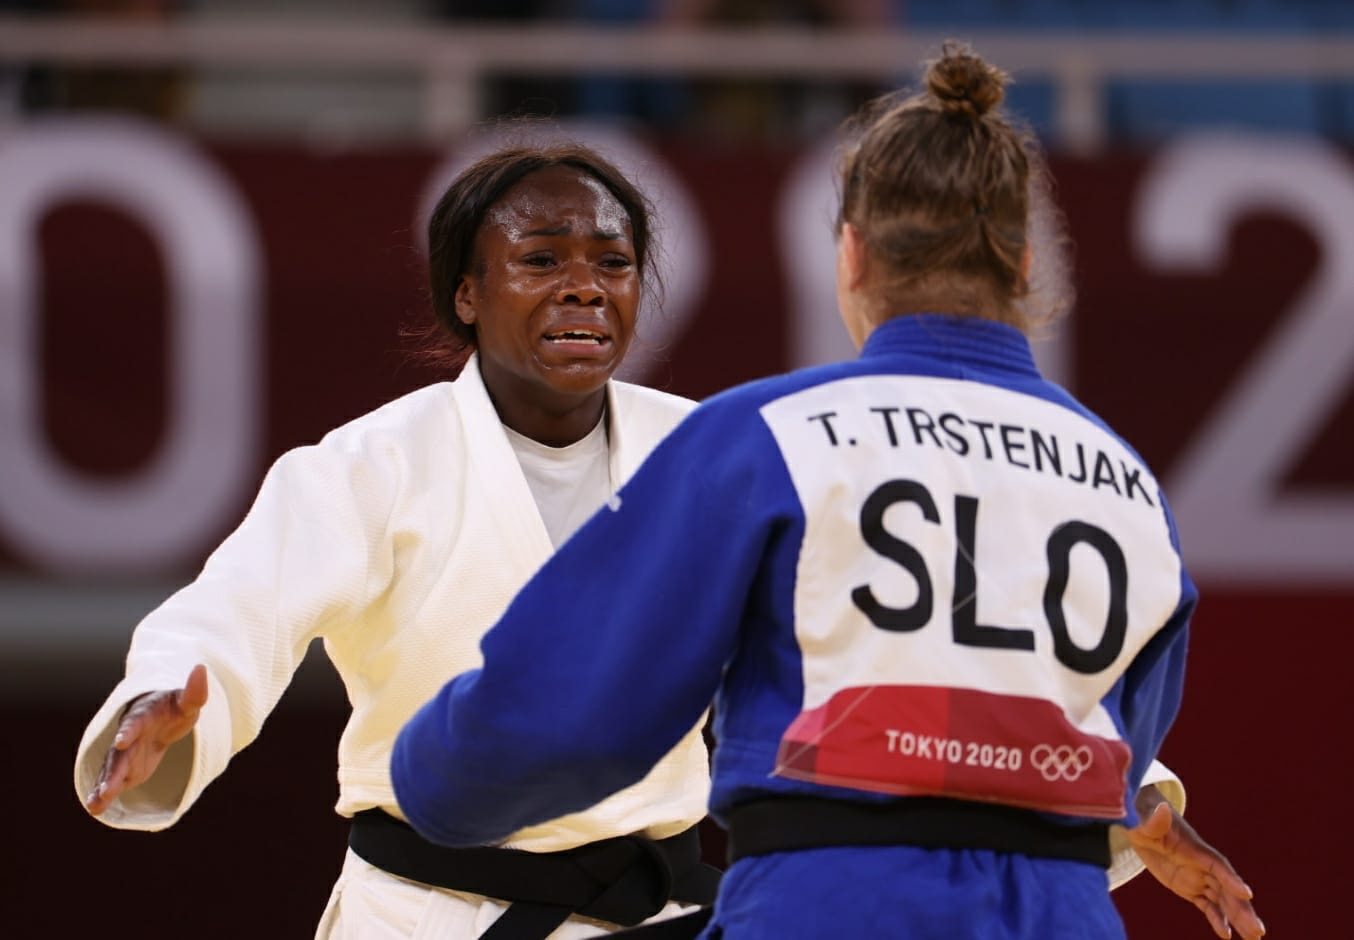 EUROPE ACCUMULATE FIVE MEDALS INCLUDING ANTICIPATED OLYMPIC TITLE